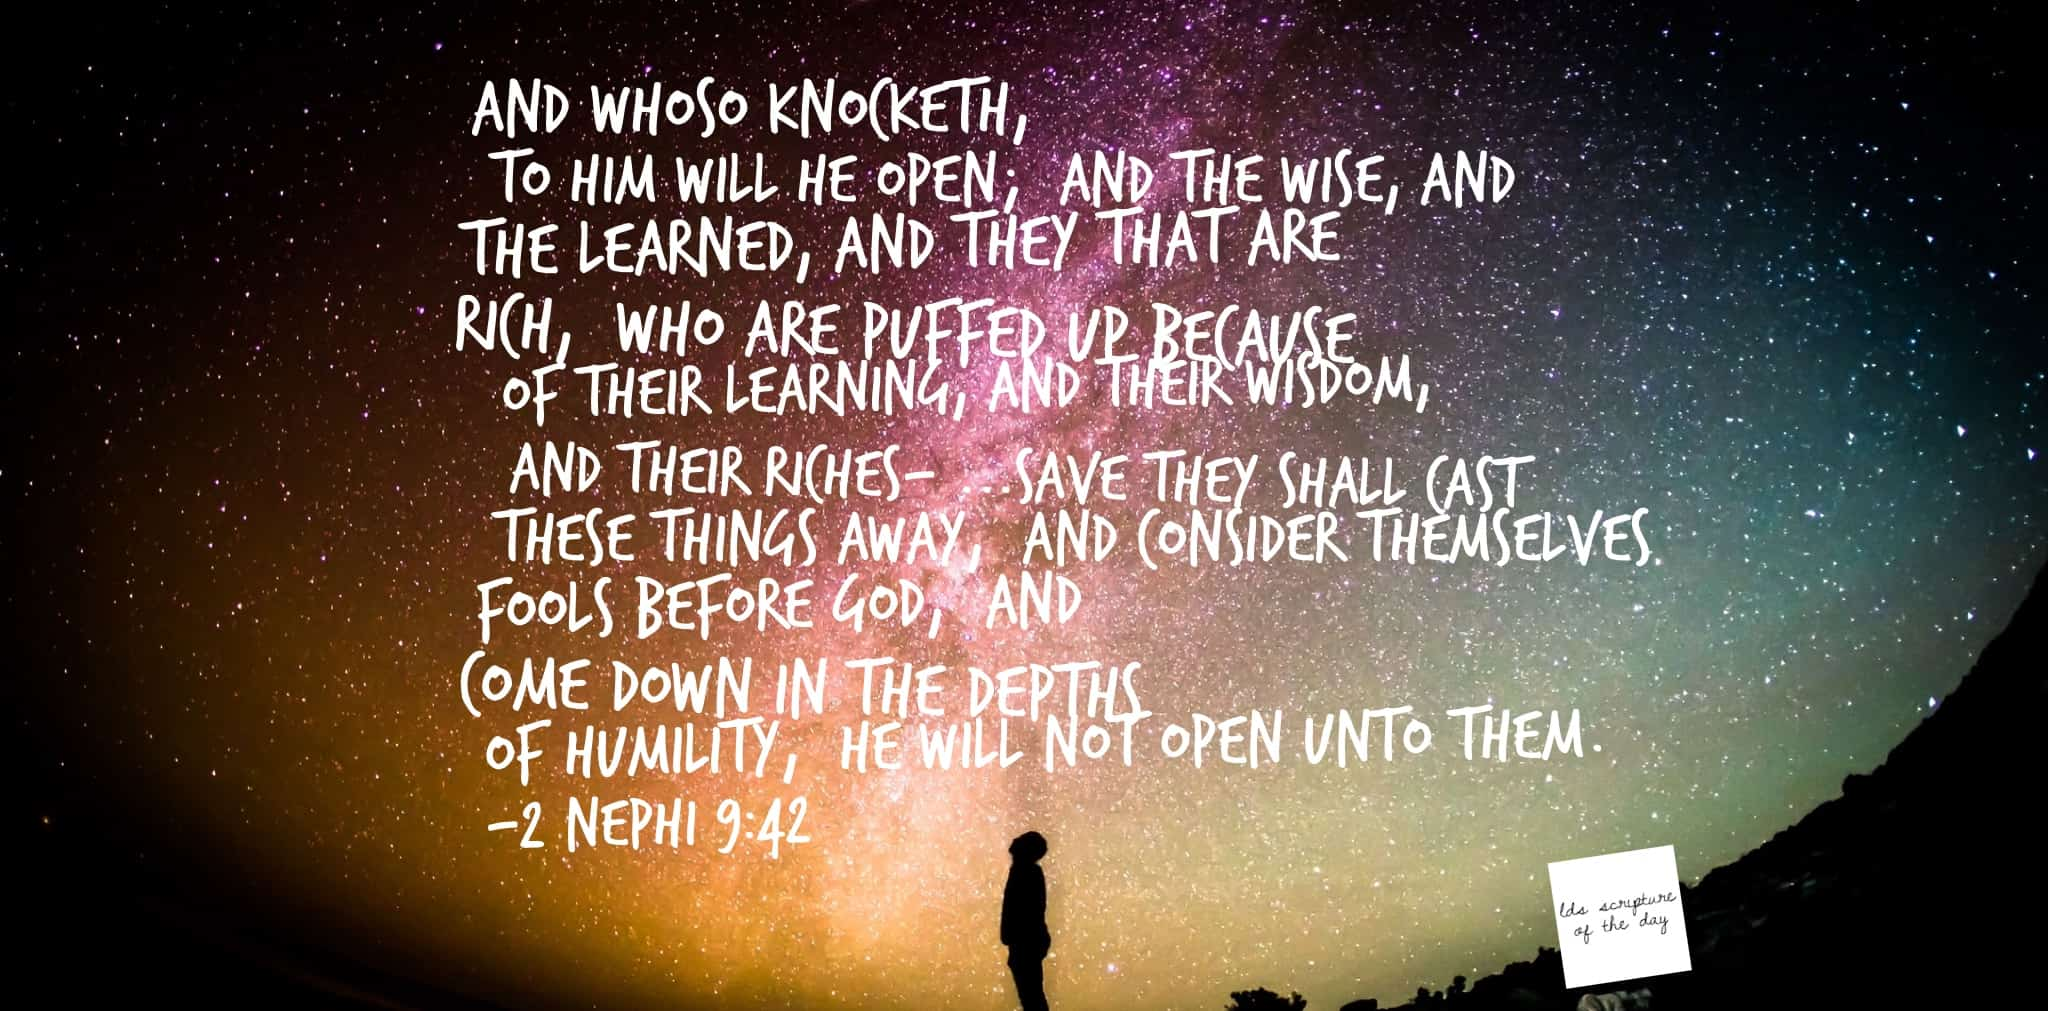 And whoso knocketh, to him will he open; and the wise, and the learned, and they that are rich, who are puffed up because of their learning, and their wisdom, and their riches—yea, they are they whom he despiseth; and save they shall cast these things away, and consider themselves fools before God, and come down in the depths of humility, he will not open unto them. 2 Nephi 9:42